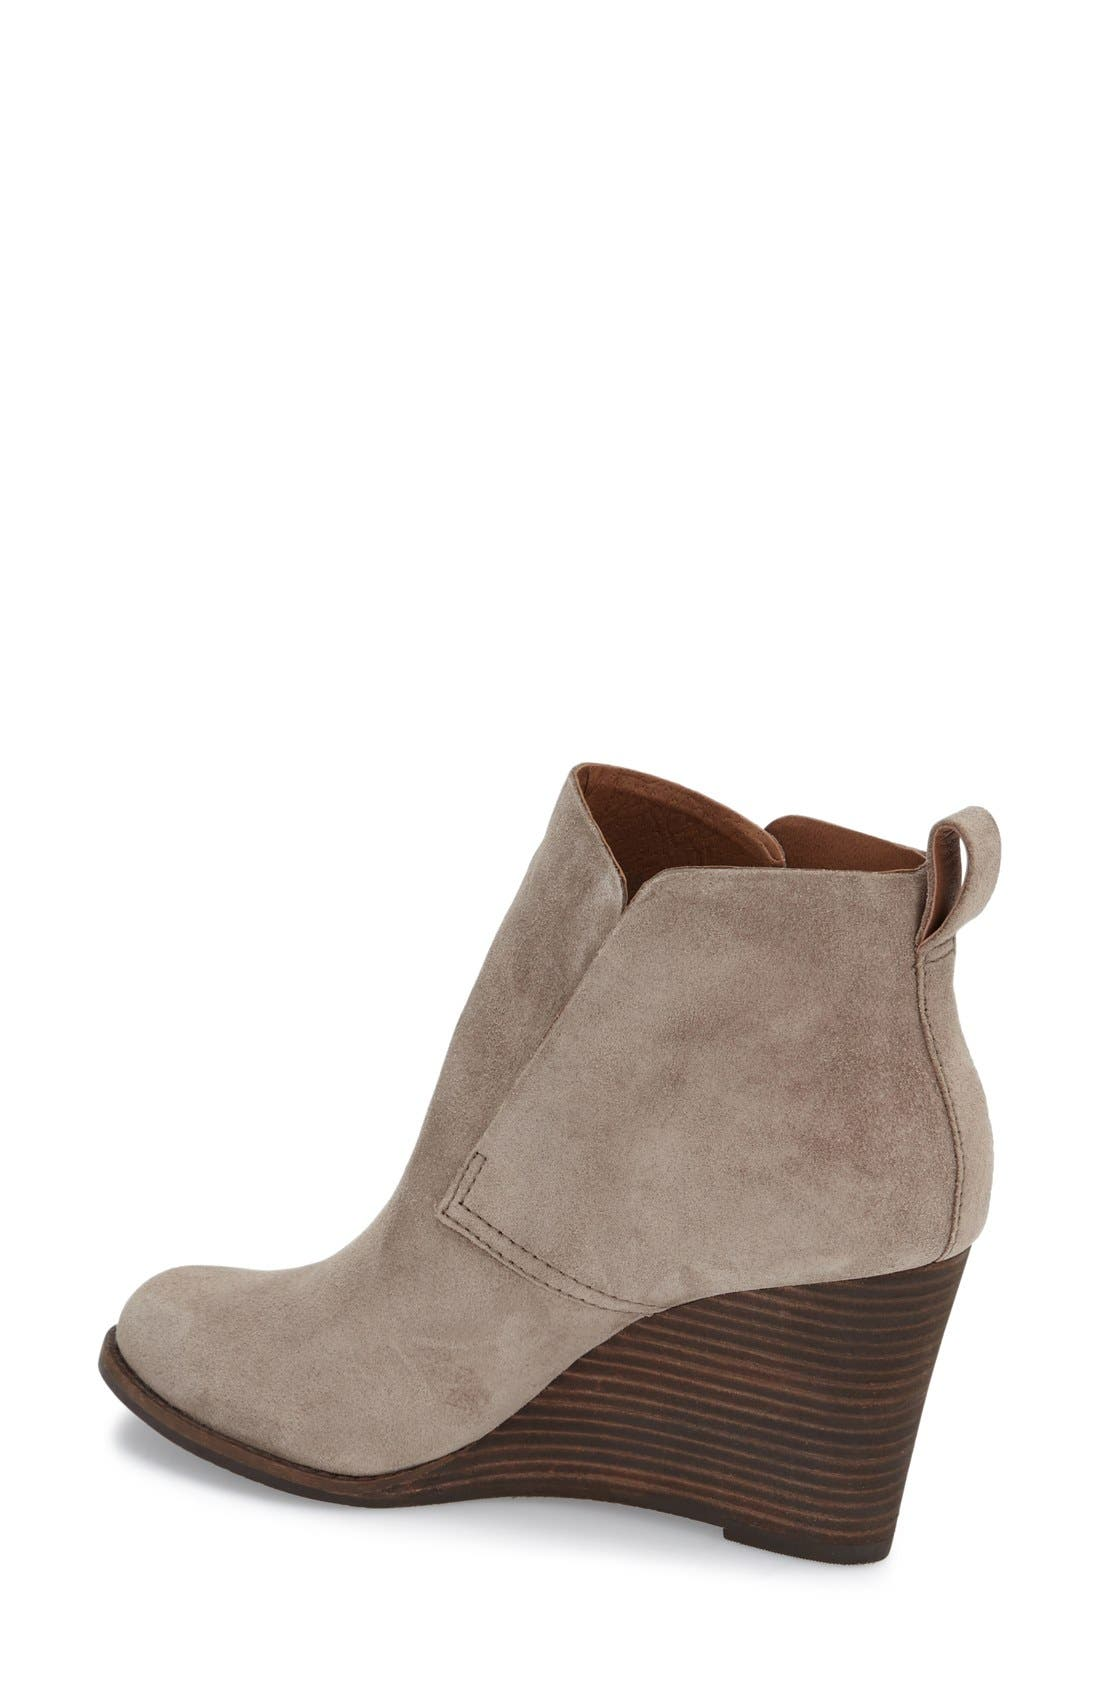 'Yoniana' Wedge Bootie,                             Alternate thumbnail 9, color,